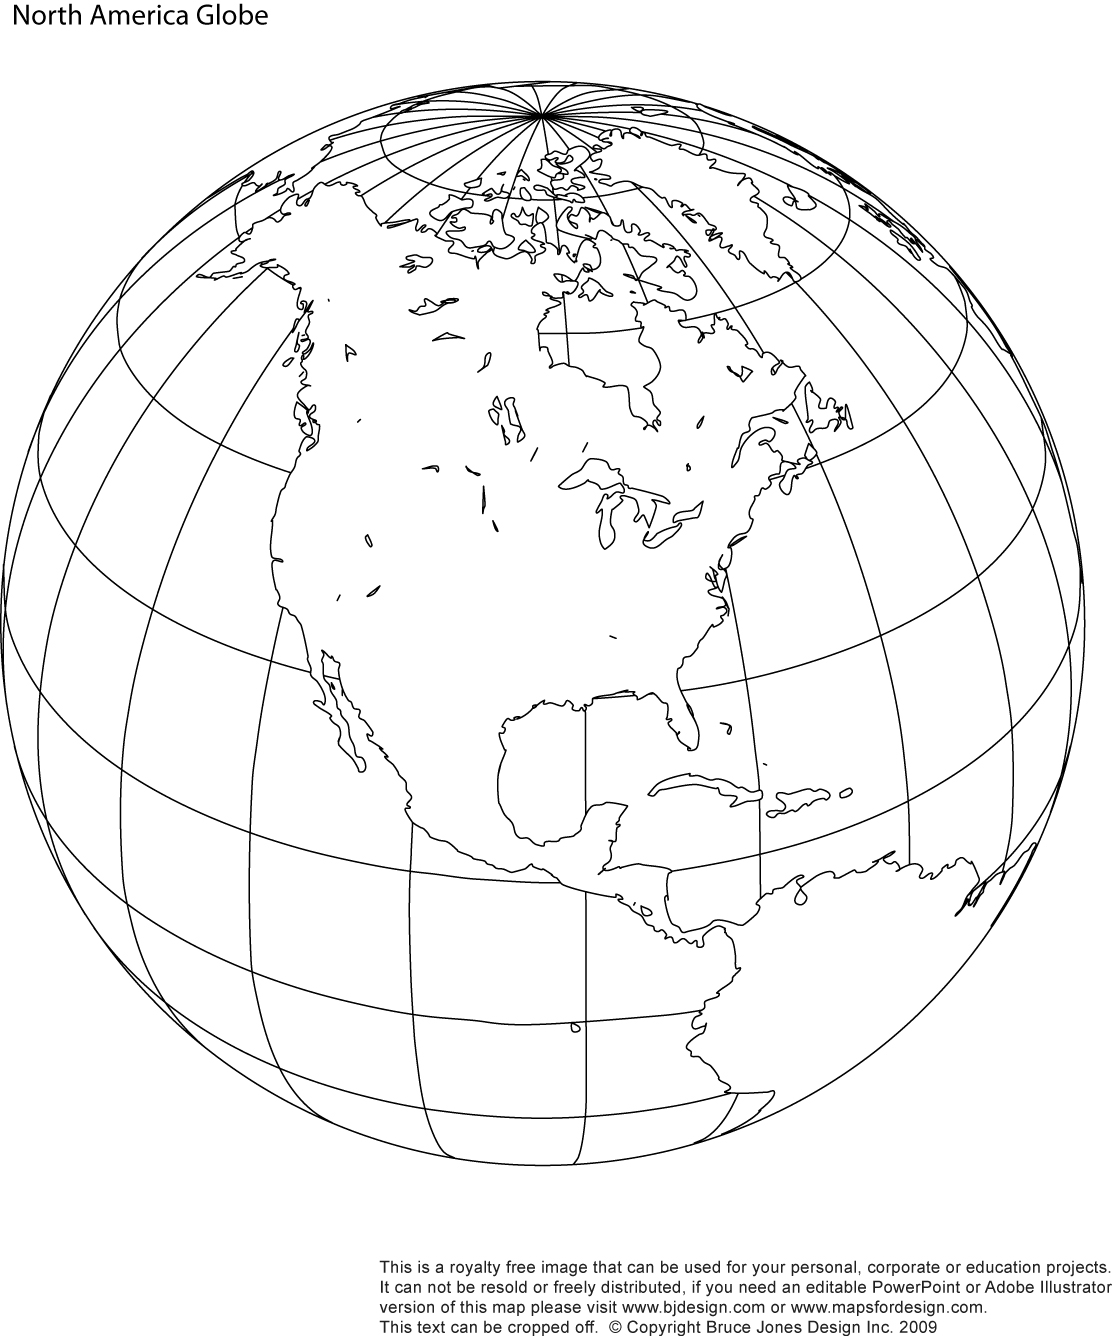 Printable Blank World Globe Earth Maps • Royalty Free